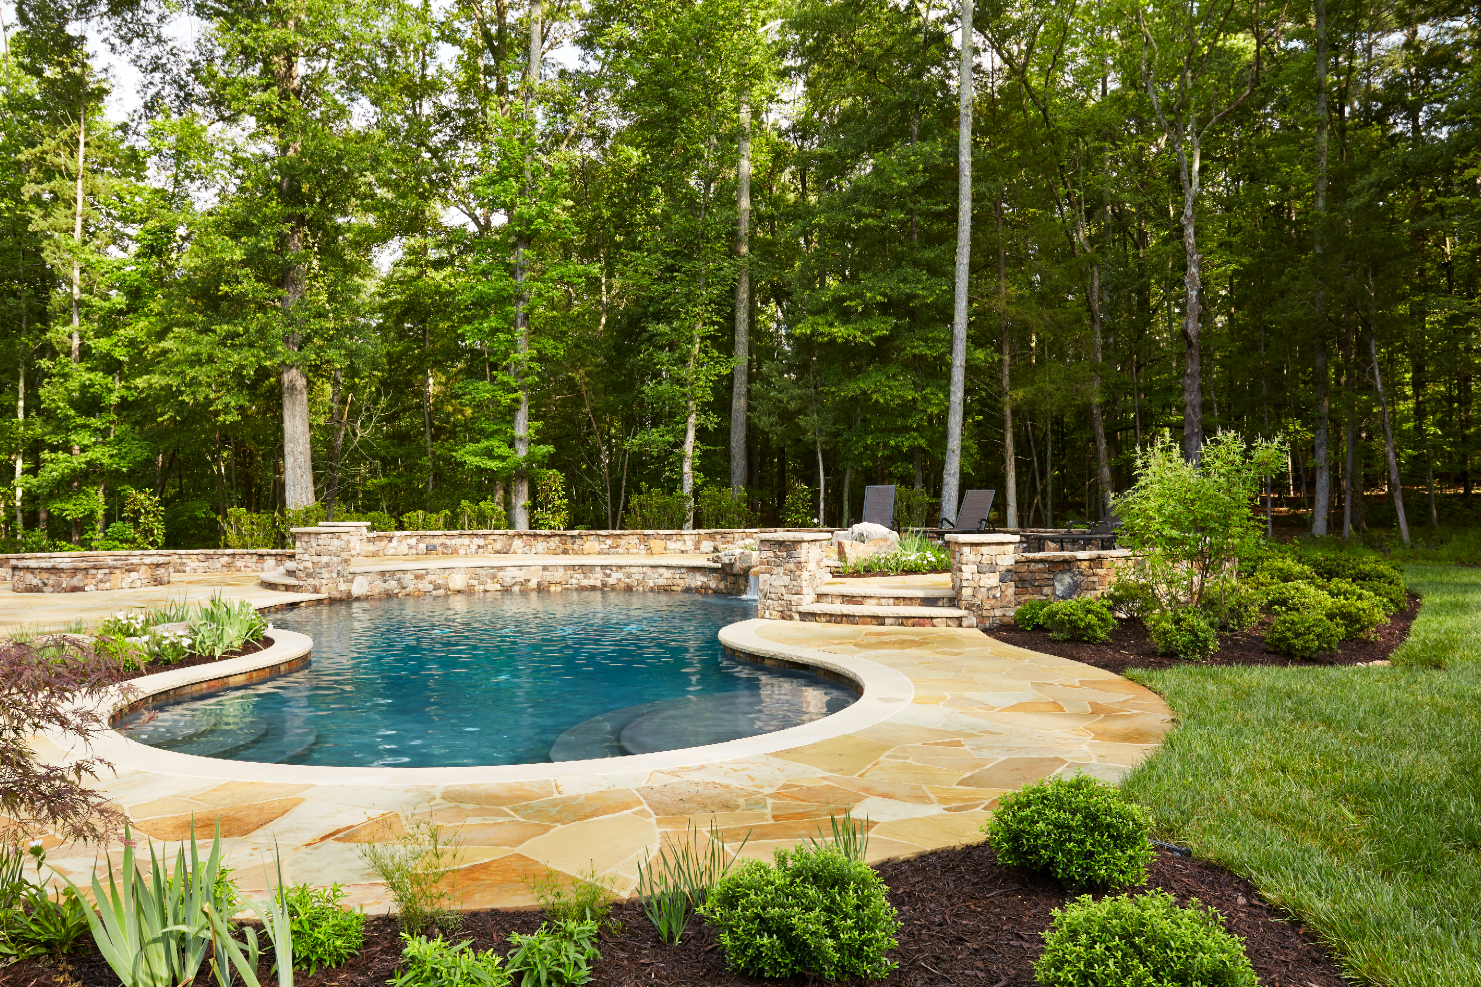 pool with outdoor kitchen backyard freeform boulder pool on country estate with contemporary feel builders choice award tudor home outdoor living area with multiple stone waterfall kitchen marcia fryer